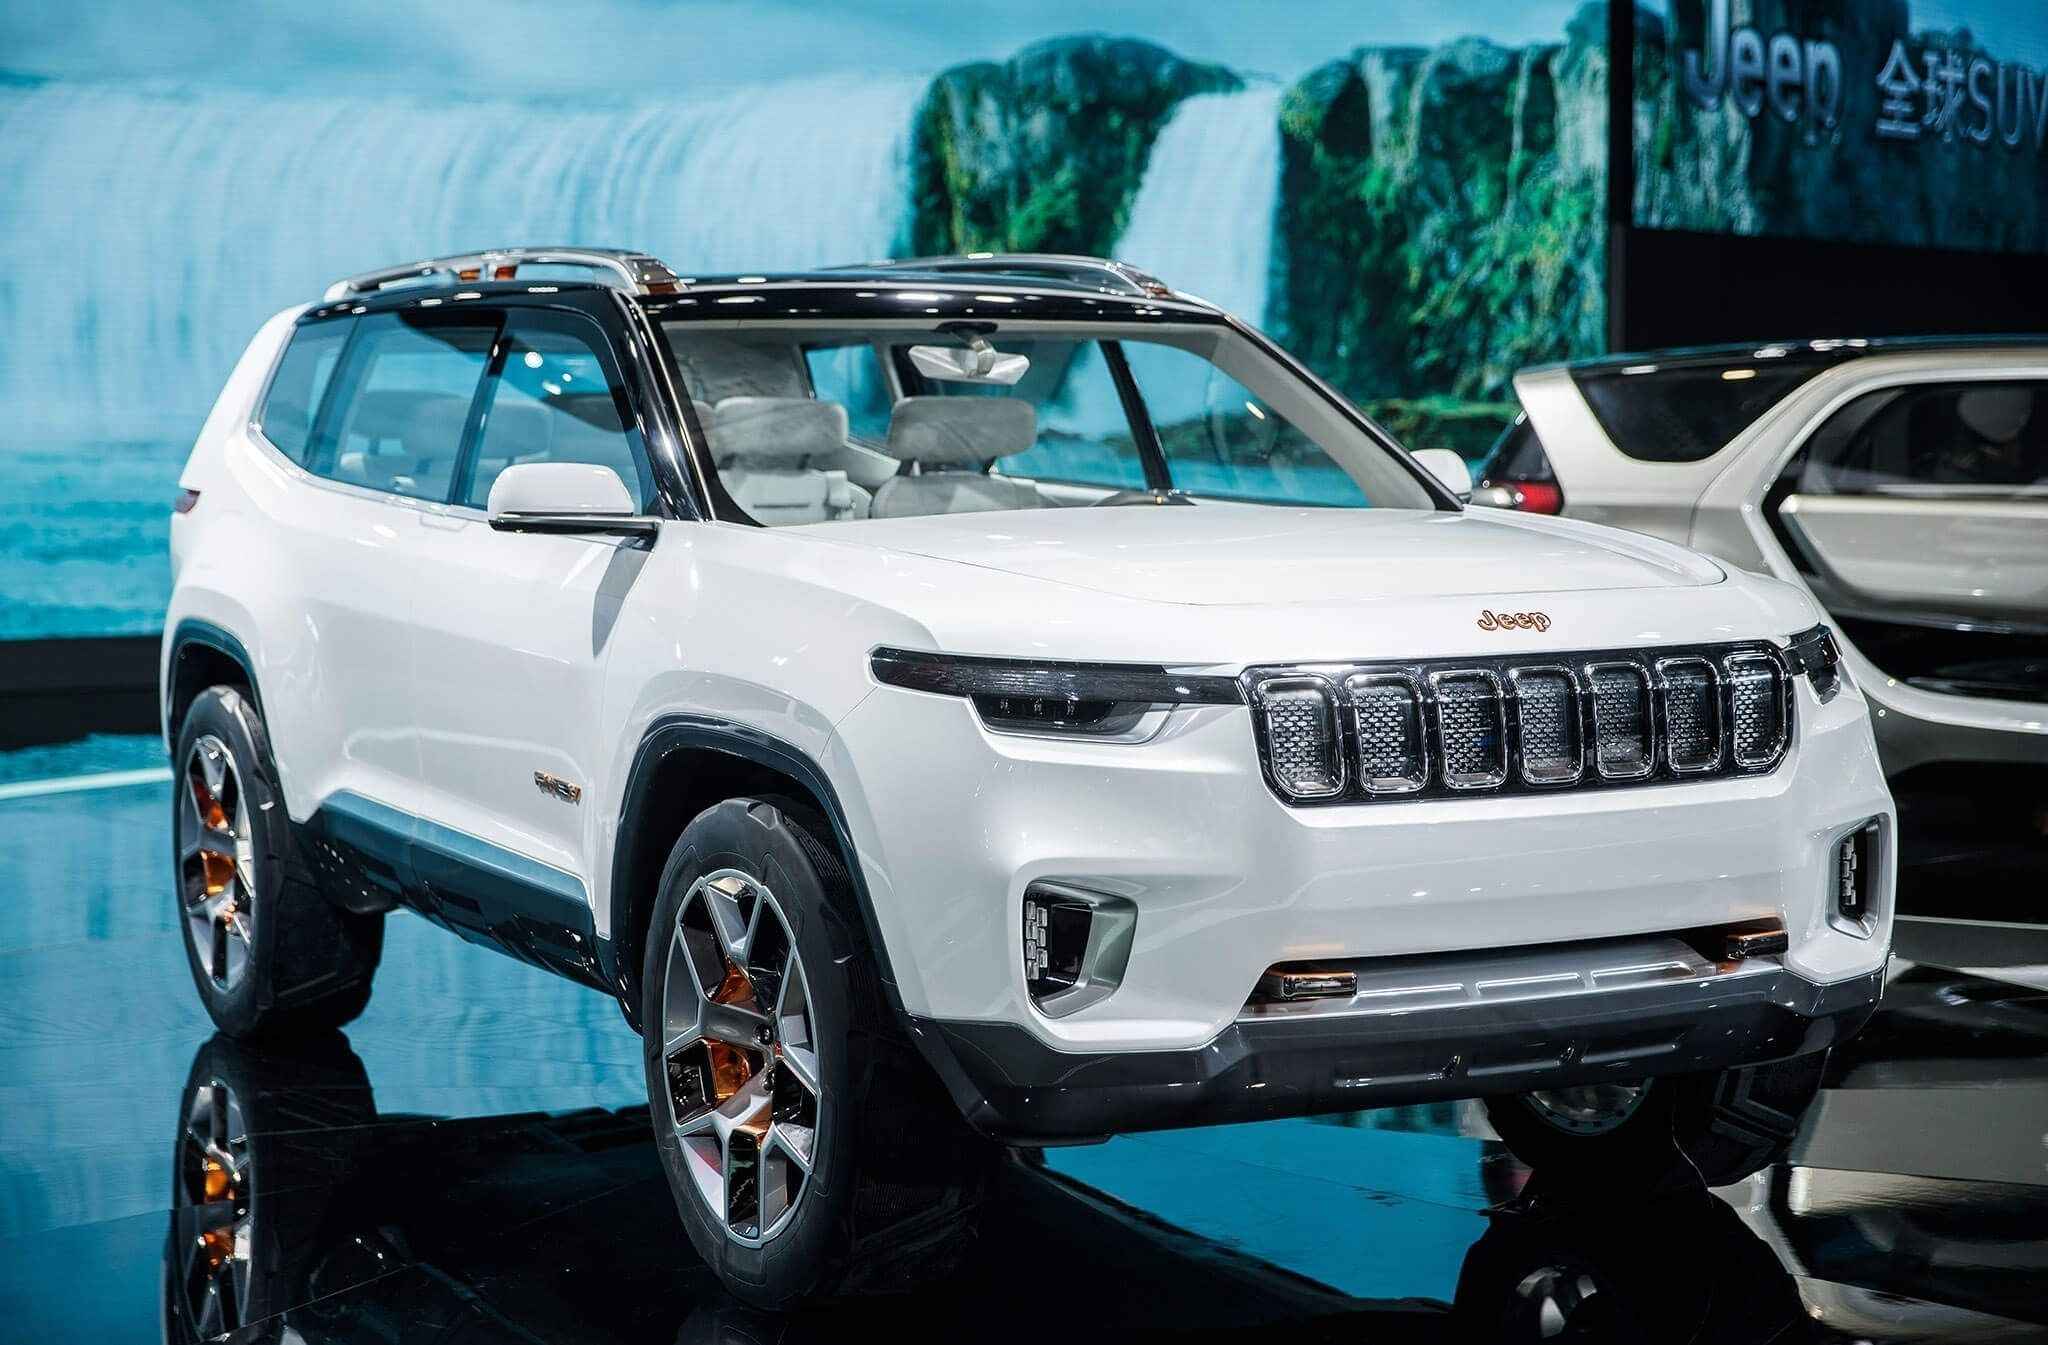 43 New 2020 Grand Cherokee Release